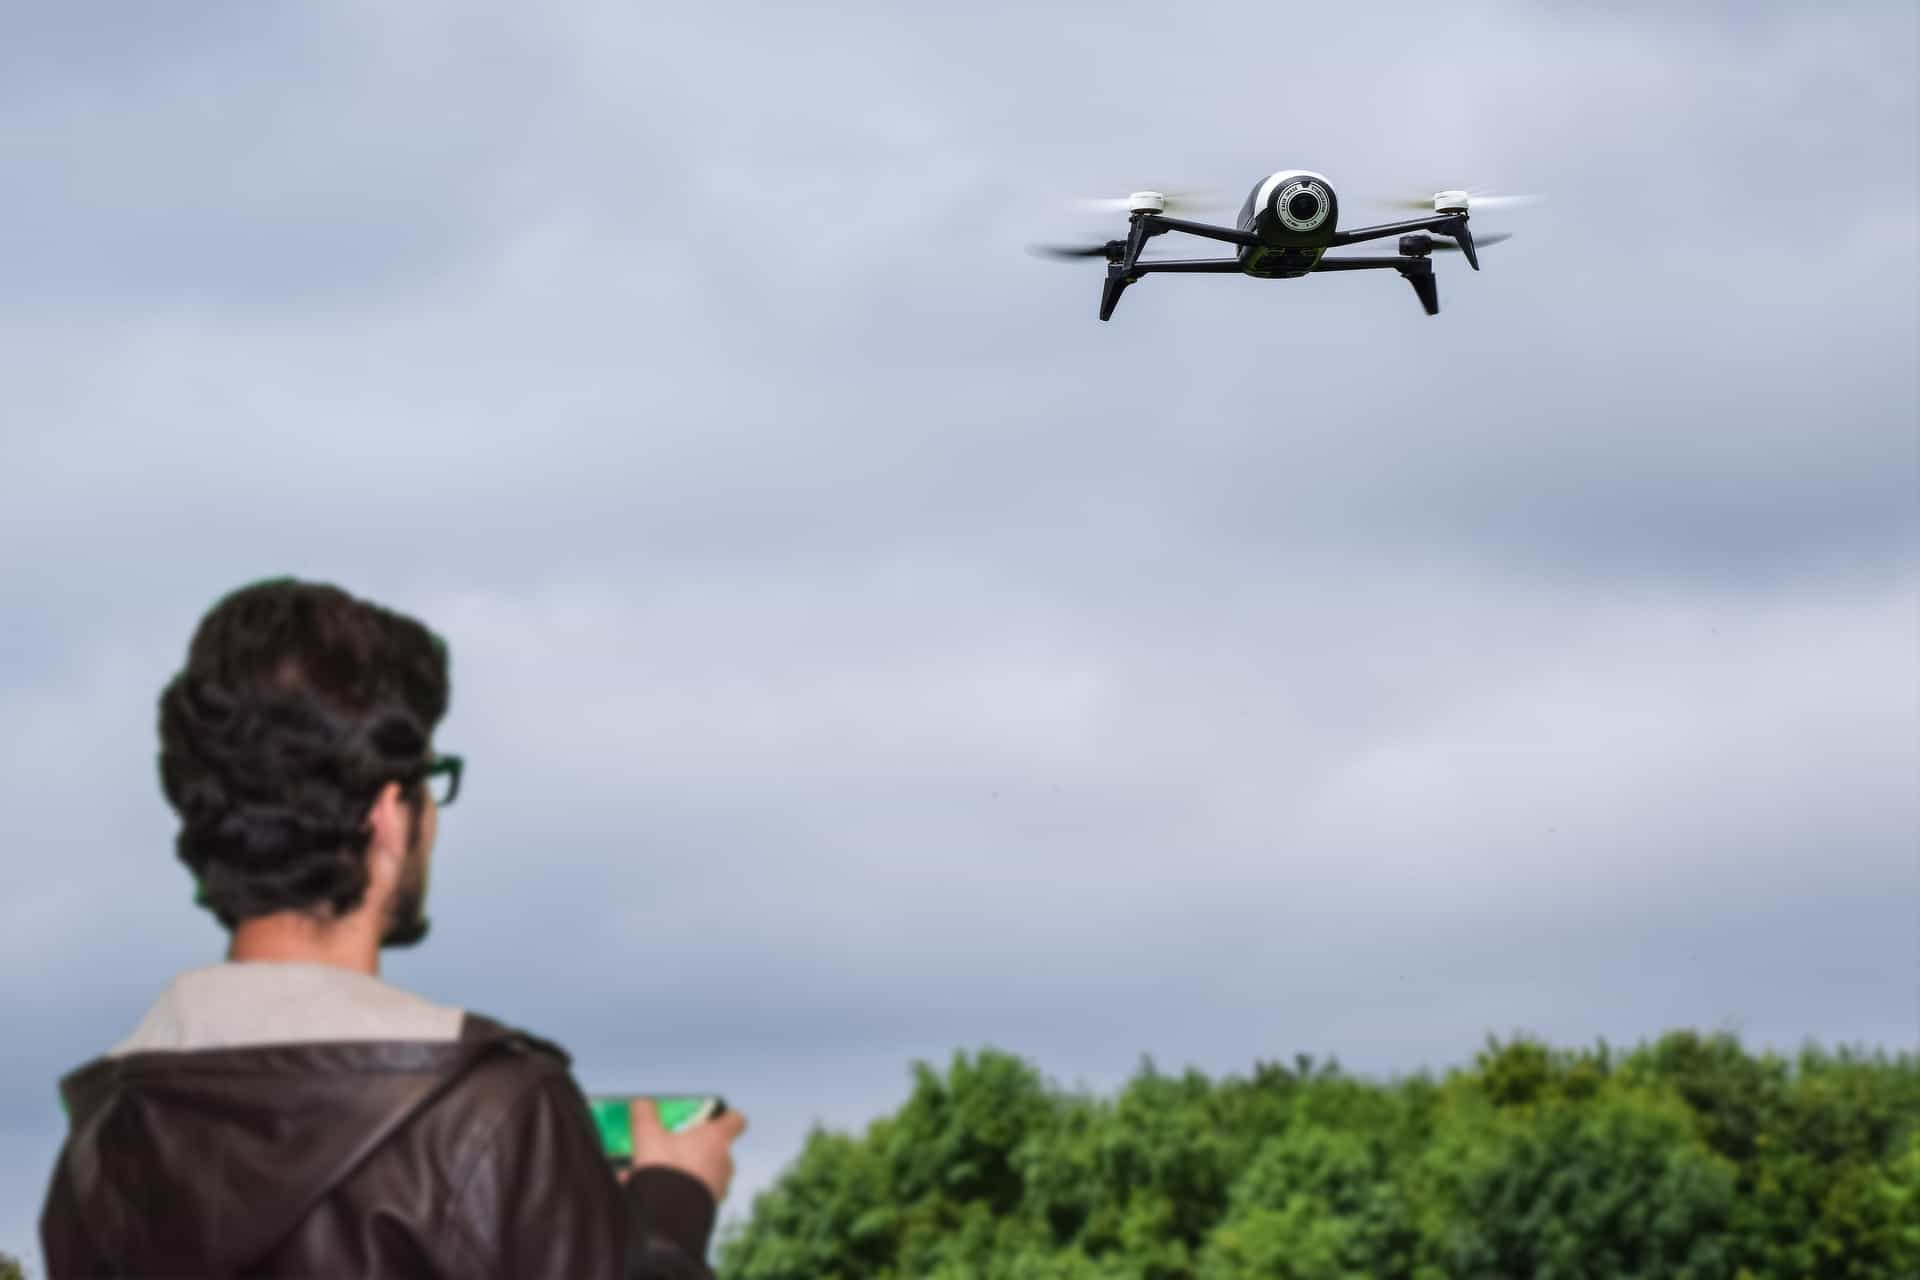 Advantages And Disadvantages Of Toy Drone